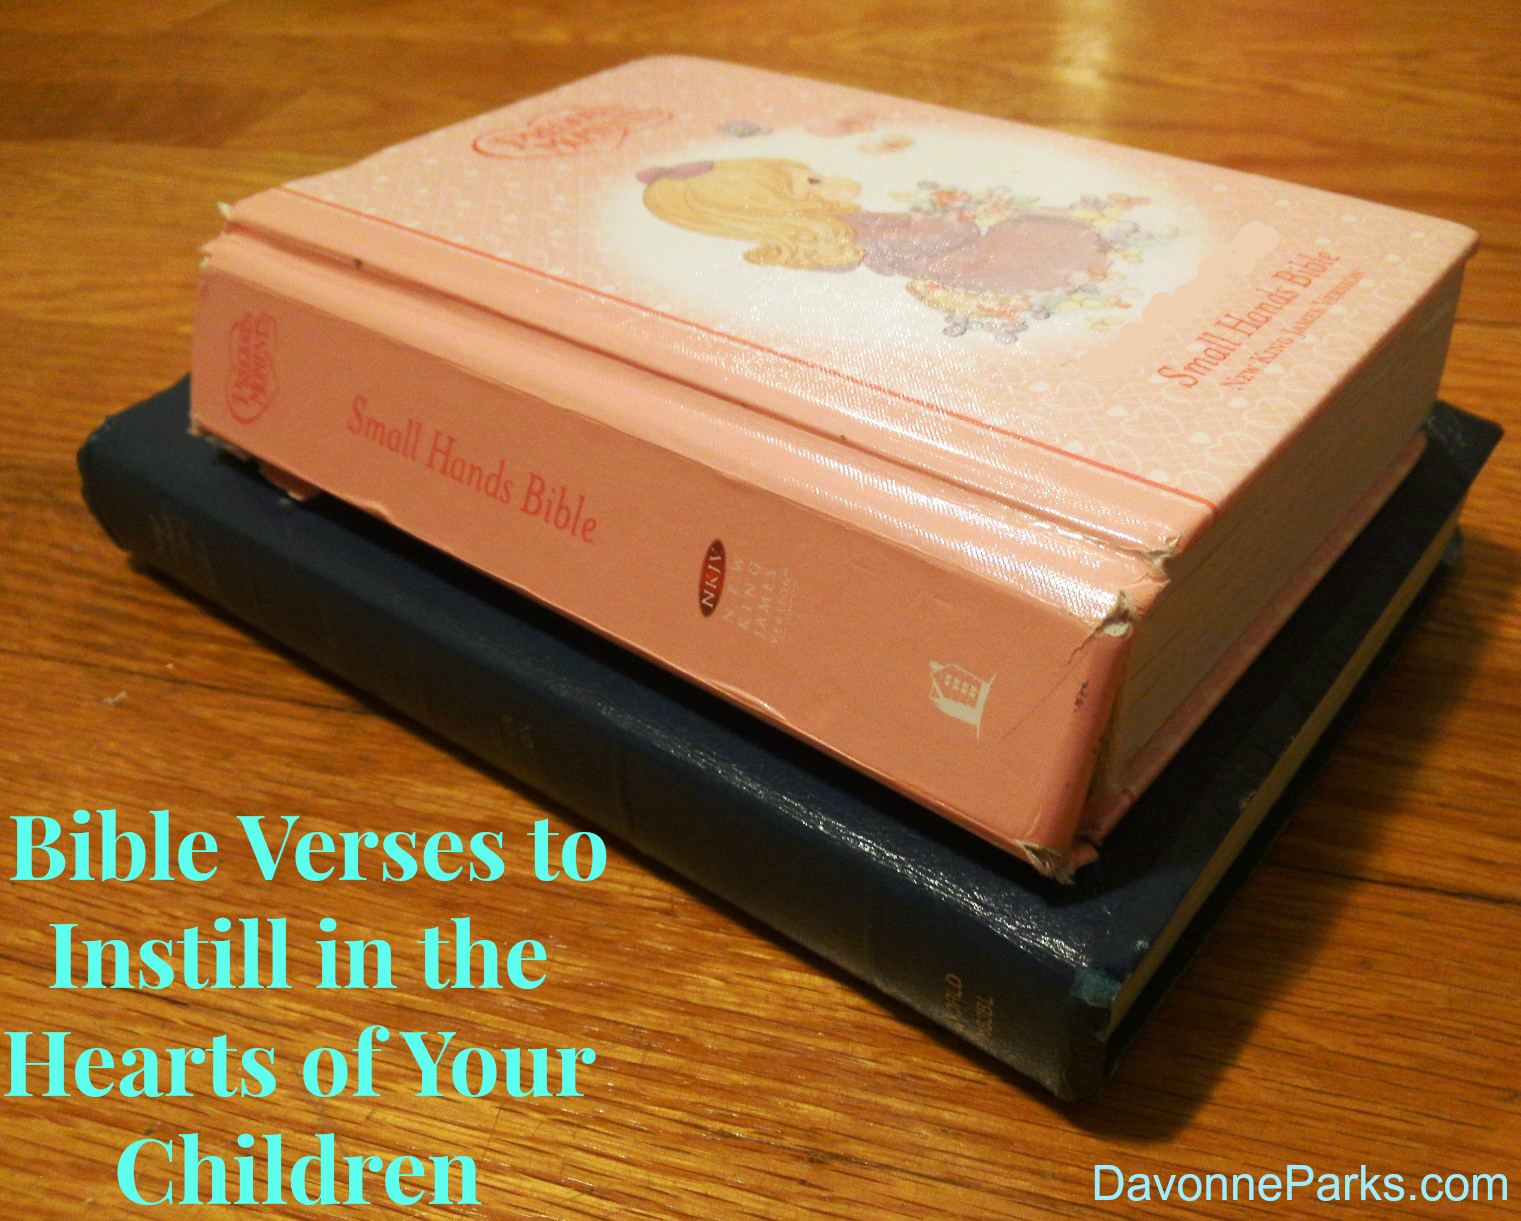 Bible Verses to Instill in the Hearts of Our Children